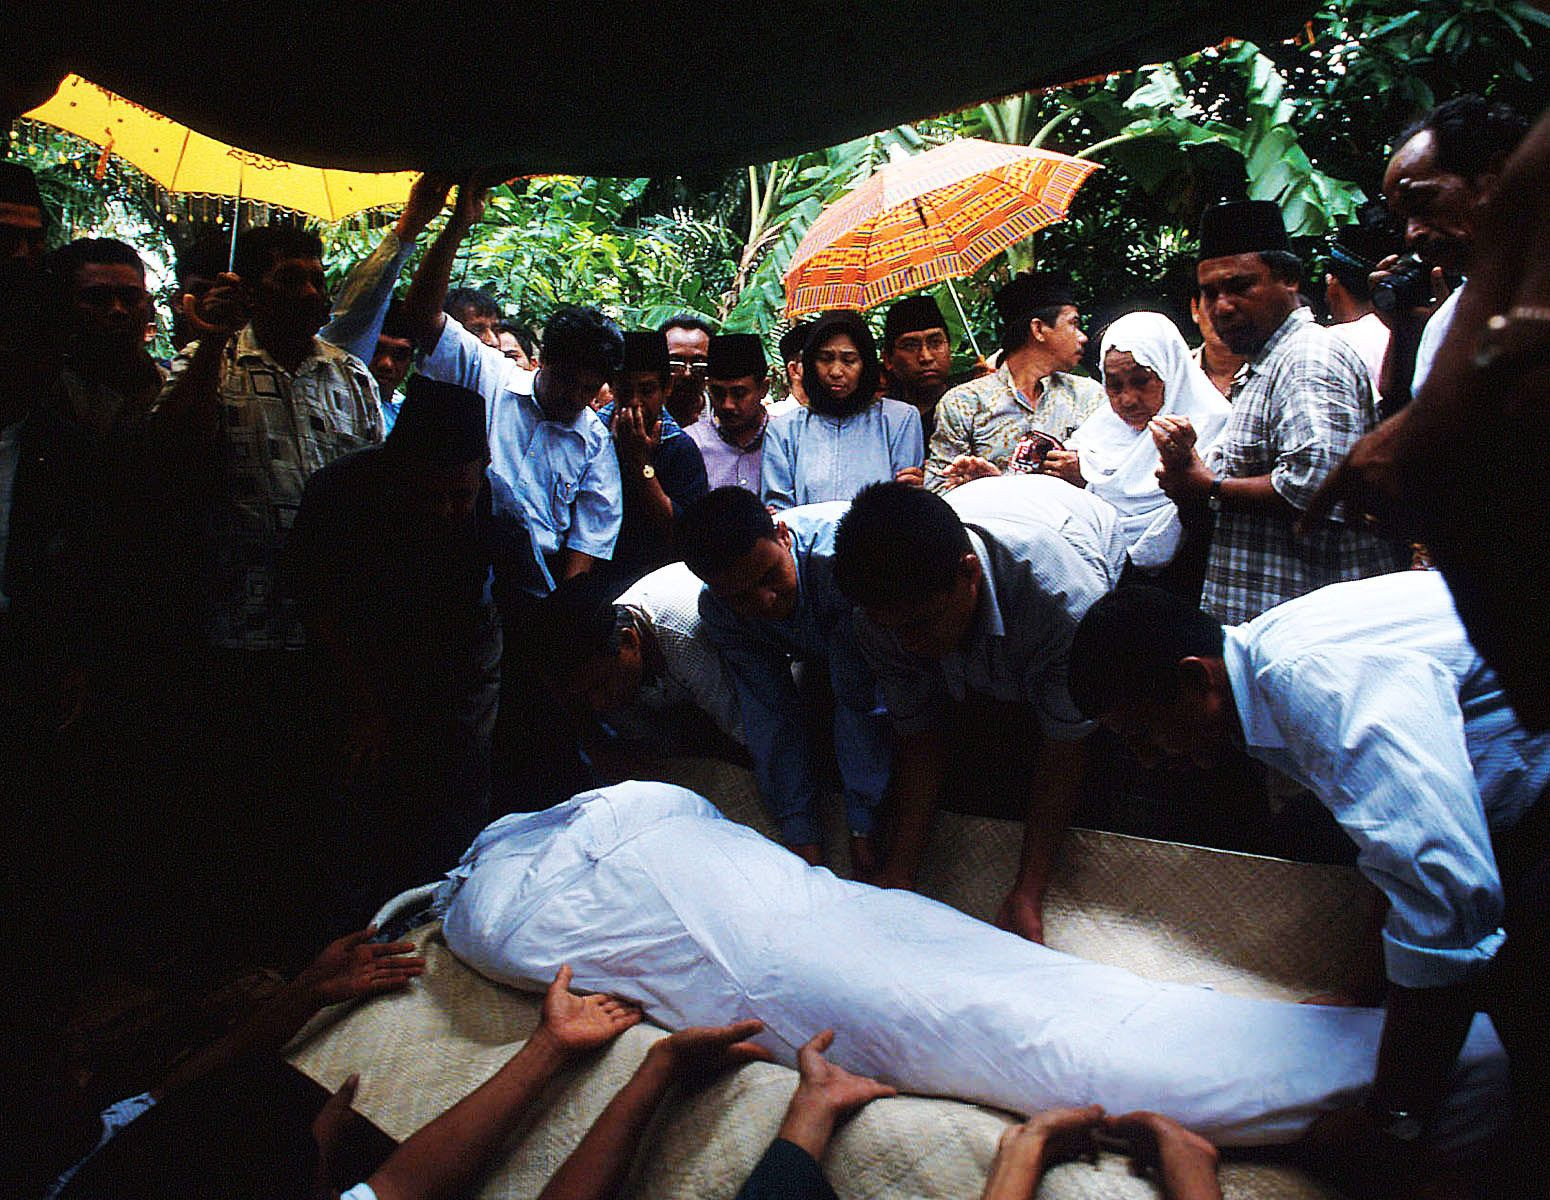 Burying the body of Professor Dayan Dawood, a rector of the prestigious Syiah Kuala University, who has supported demilitarization in Aceh since 1998.On September 6th, he was killed on his way home by unidentified gunmen, two days before a scheduled visit